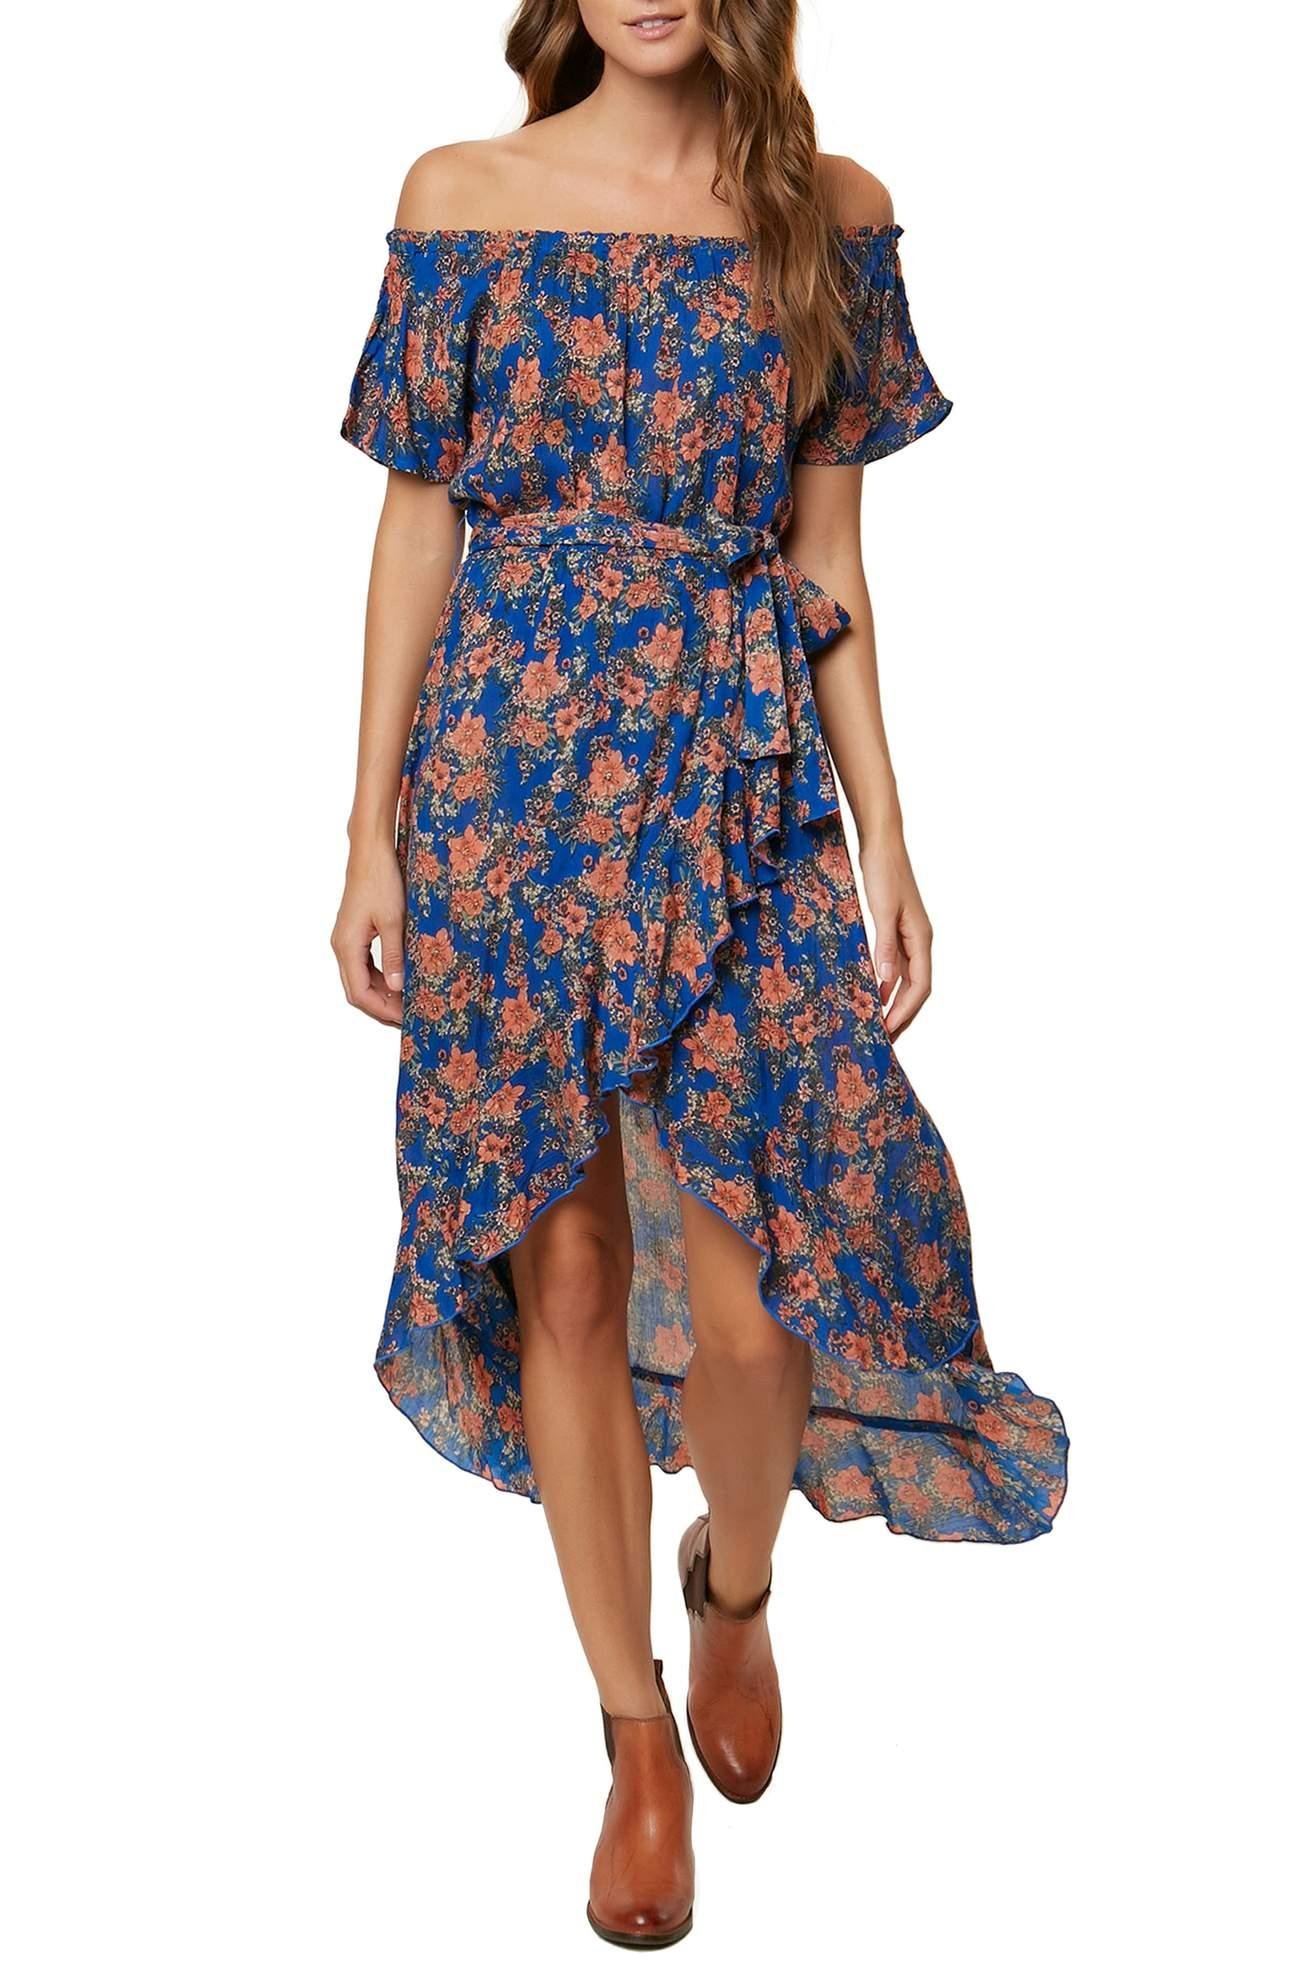 <p>Constance Woven Wrap Maxi Dress/O'NEILL.{&amp;nbsp;}Bring back the boho beat when you wrap yourself in this frilly, floral, front-slit dress from Constance Woven Wrap Maxi Dress/O'NEILL.$64.00 at Nordstrom. (Image: Nordstrom)</p><p><br></p><p></p>